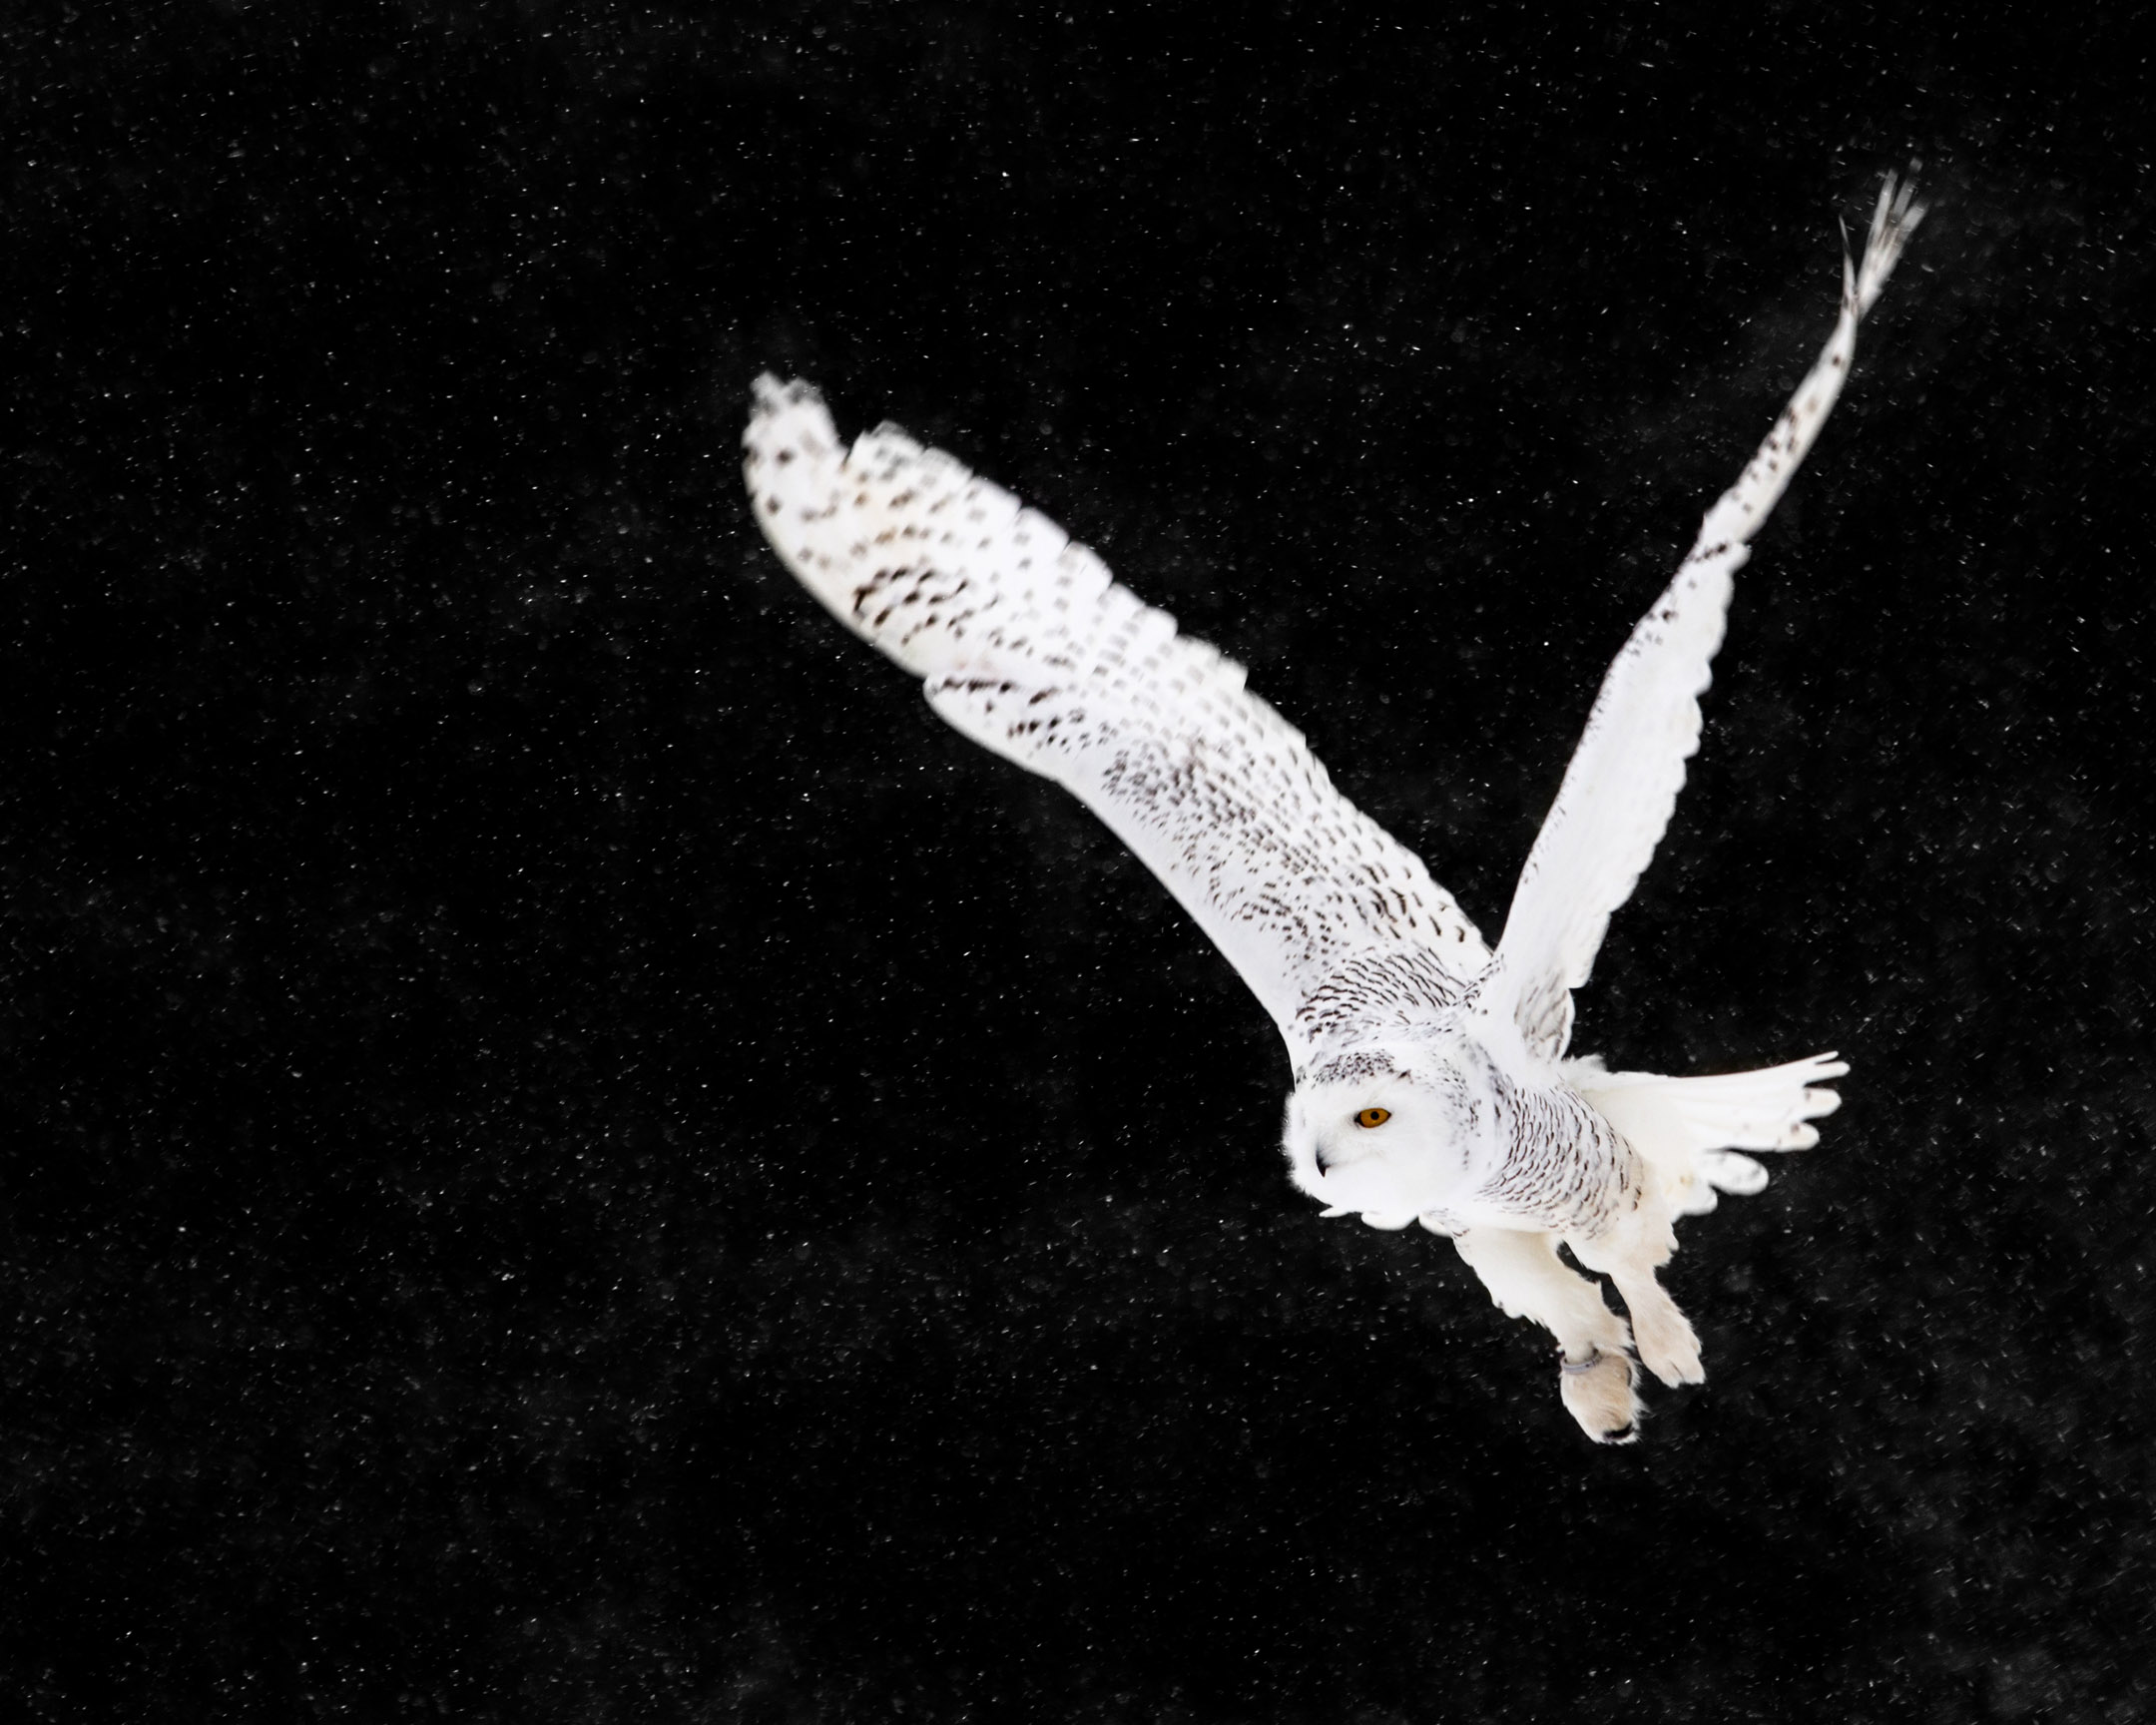 Snowy Owl in flight during a snow storm - 01/17/2016